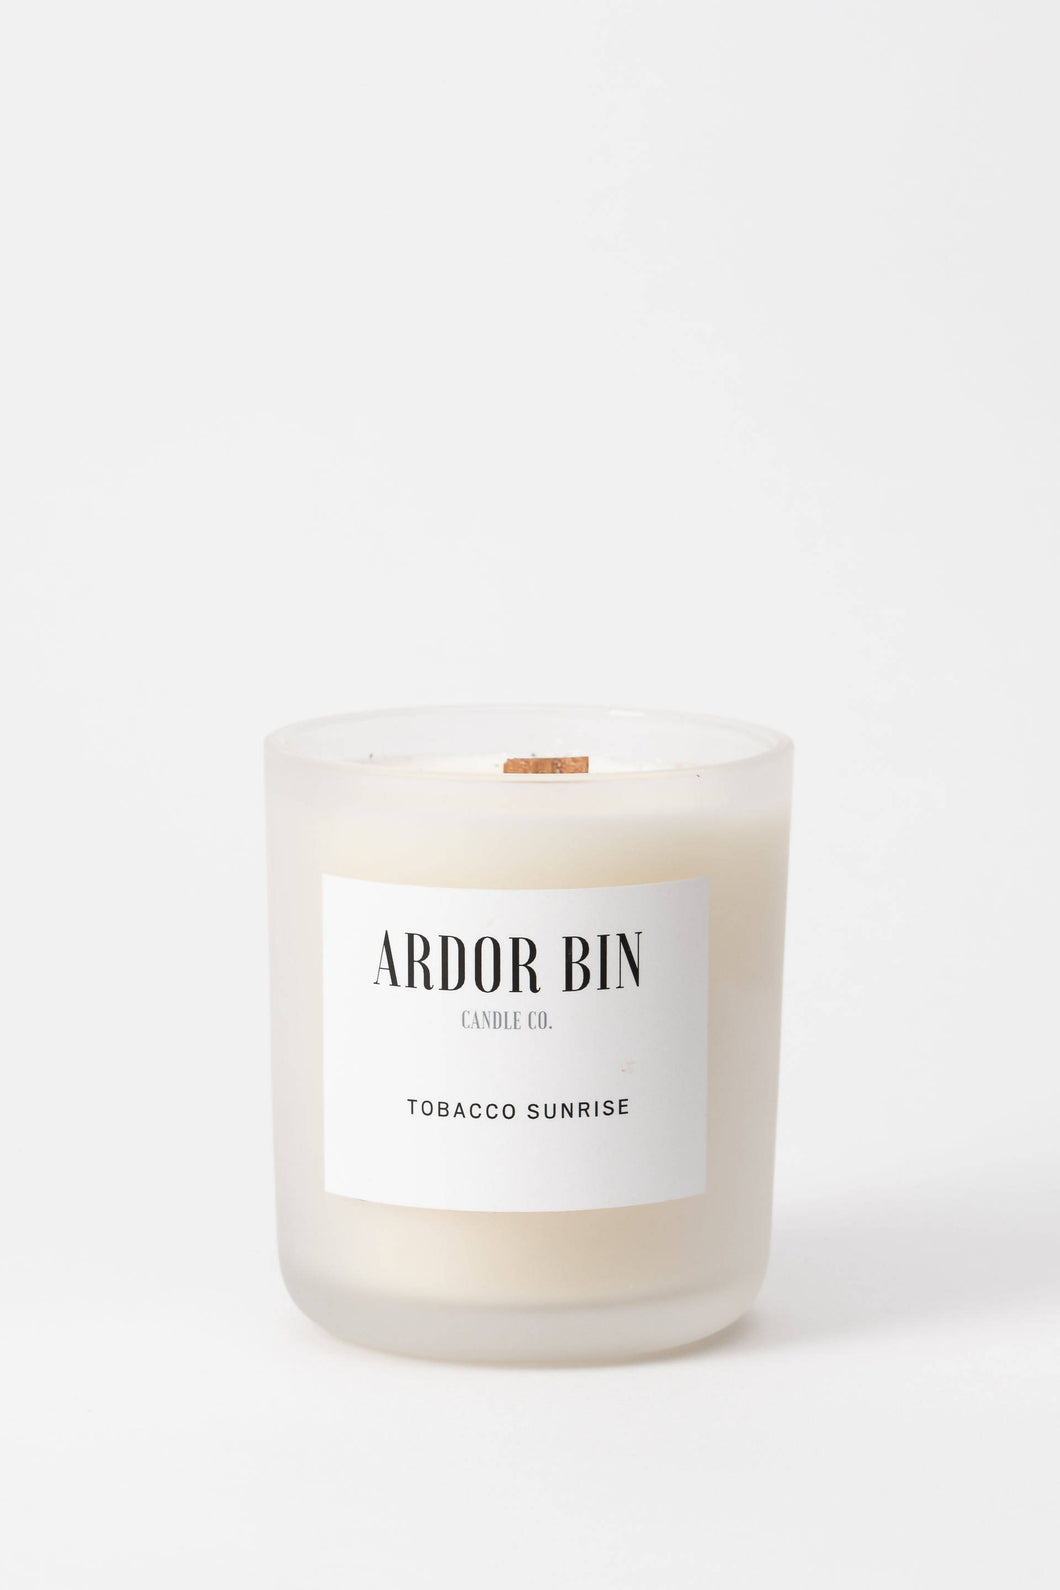 Ardor Bin Candle Co. Tobacco Sunrise 12 oz. Wood Wick Scented Candle